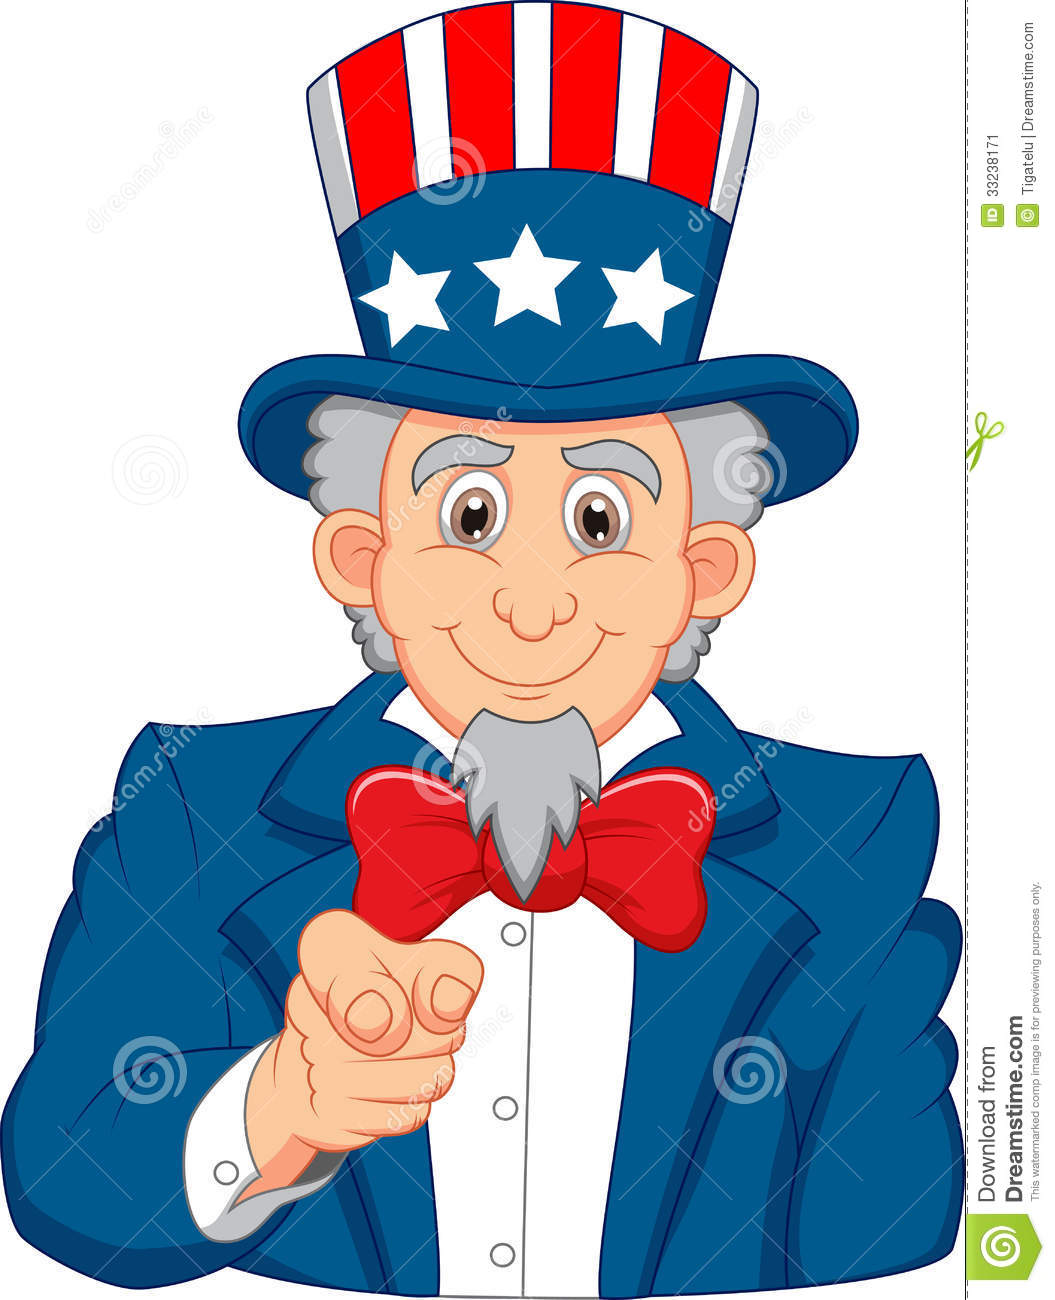 Uncle Sam Cartoon Wants You Stock Image - Image: 33238171